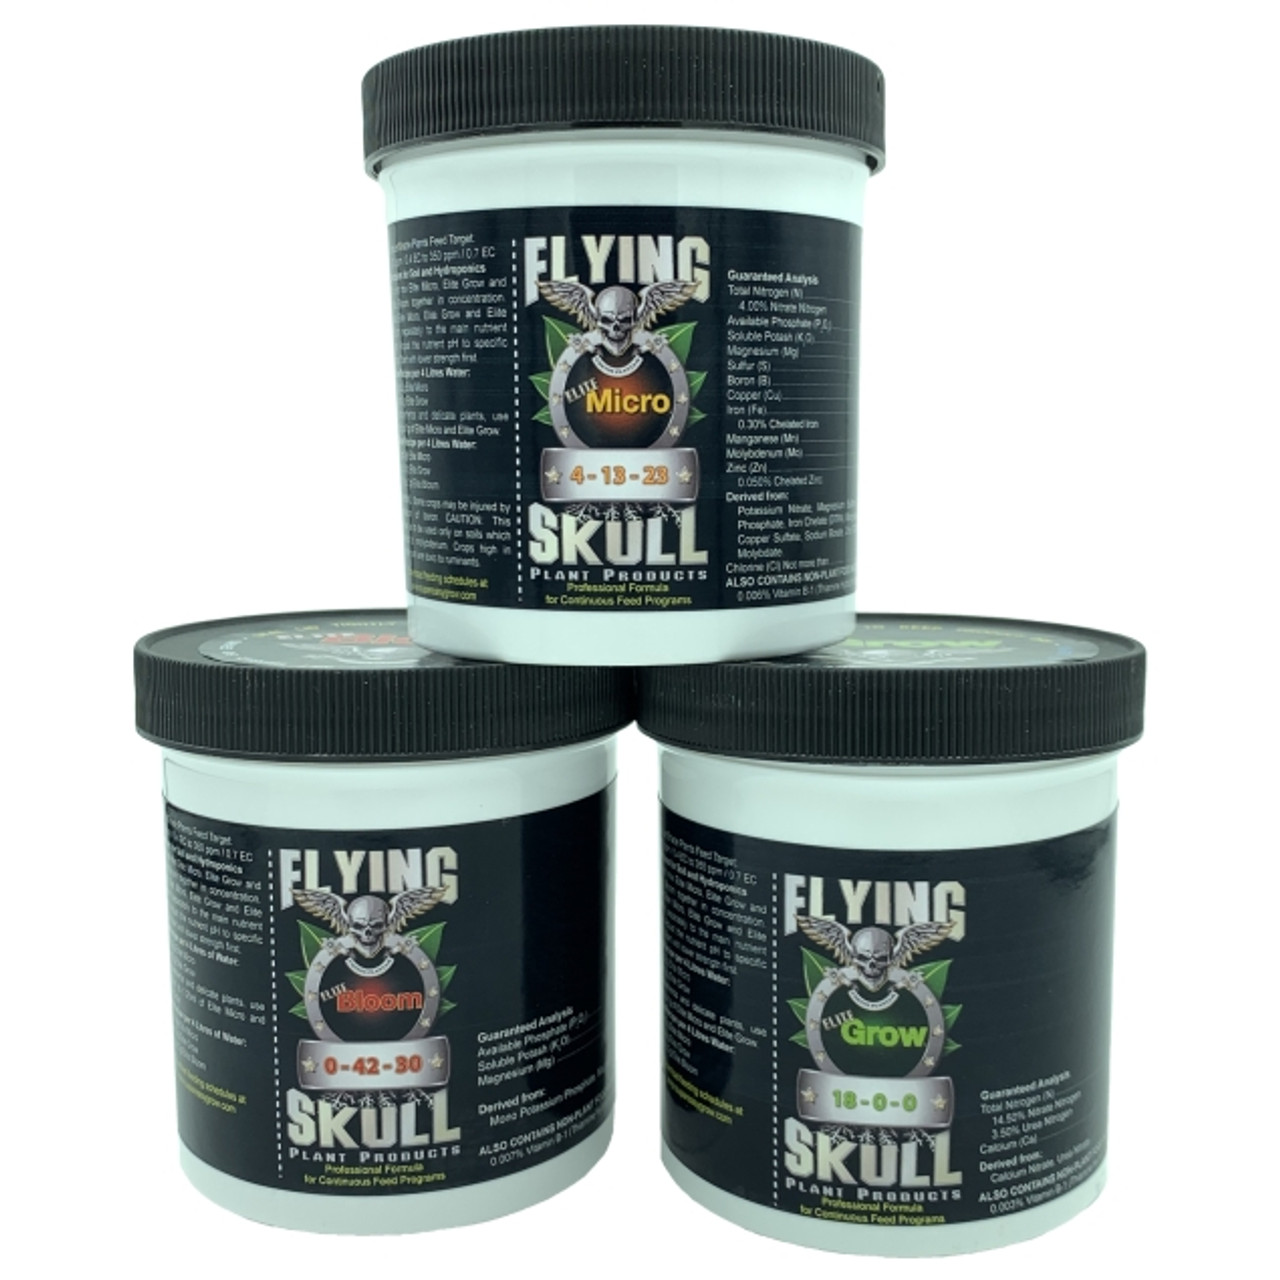 Flying Skull Elite Plant Foods Range - Elite Micro, Elite Bloom, Elite Grow